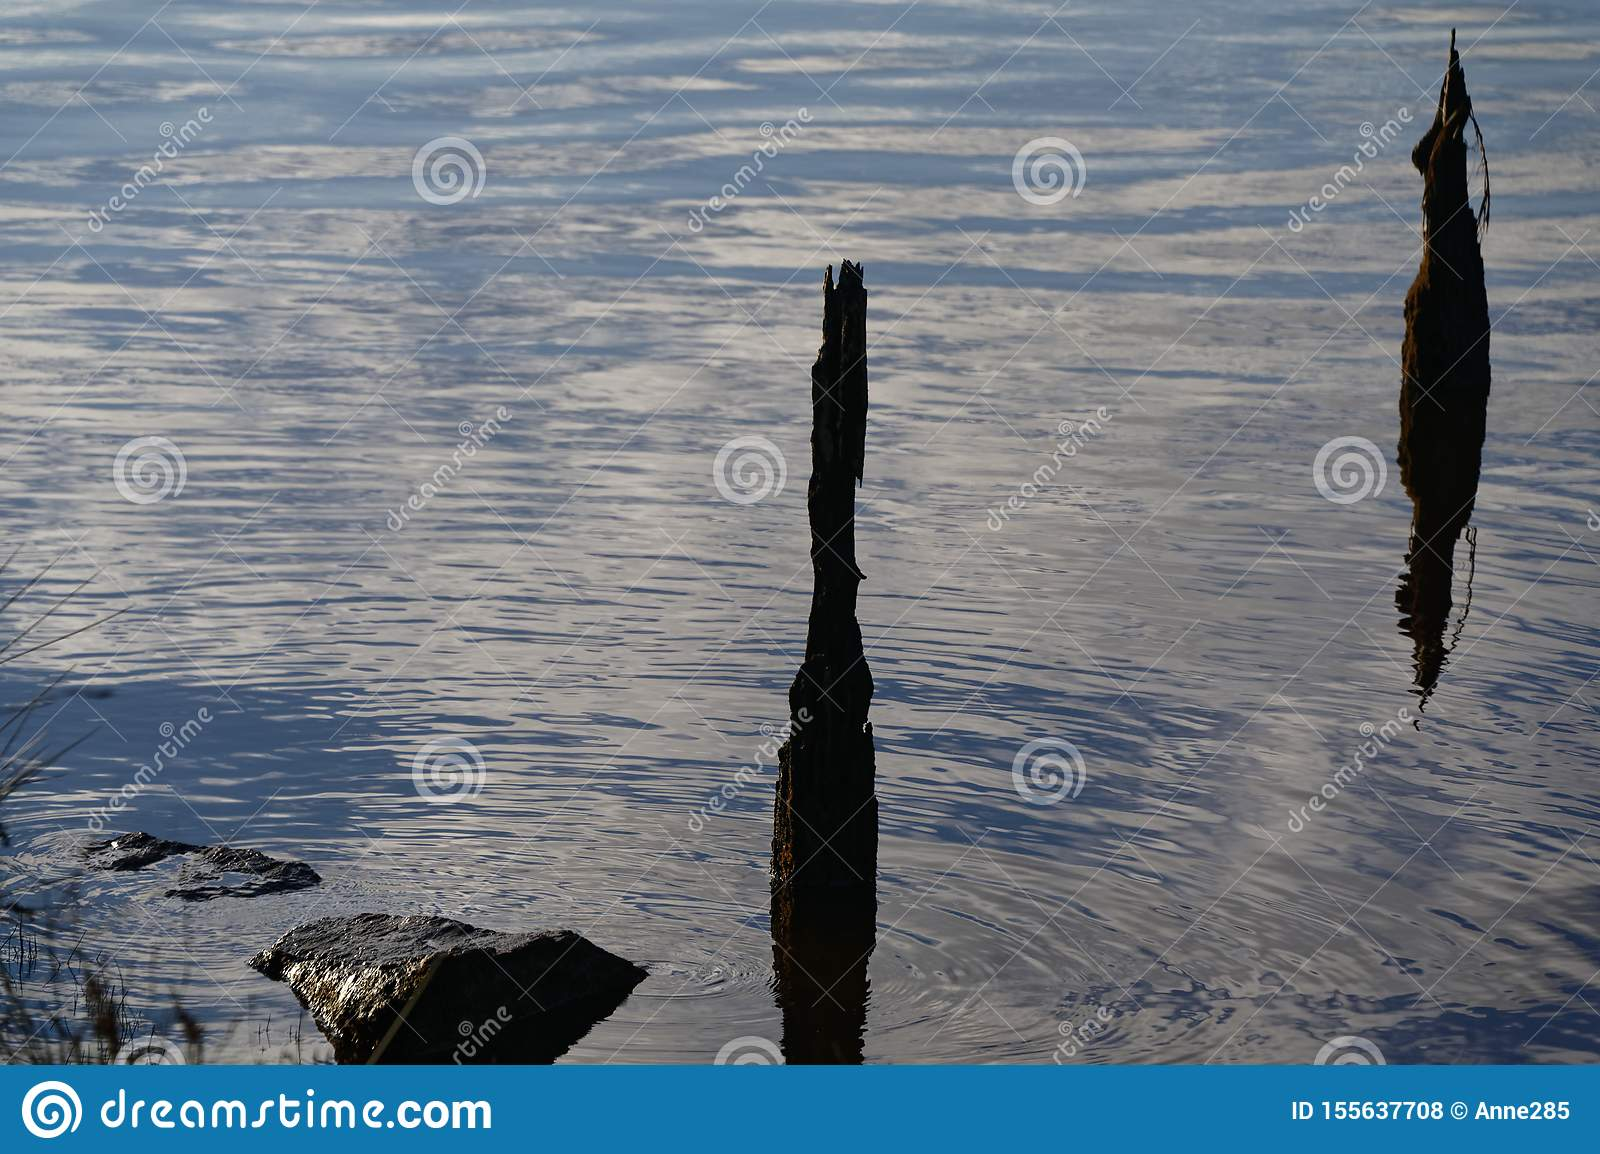 The remains of an old bridge sticks out of the water in the evening light